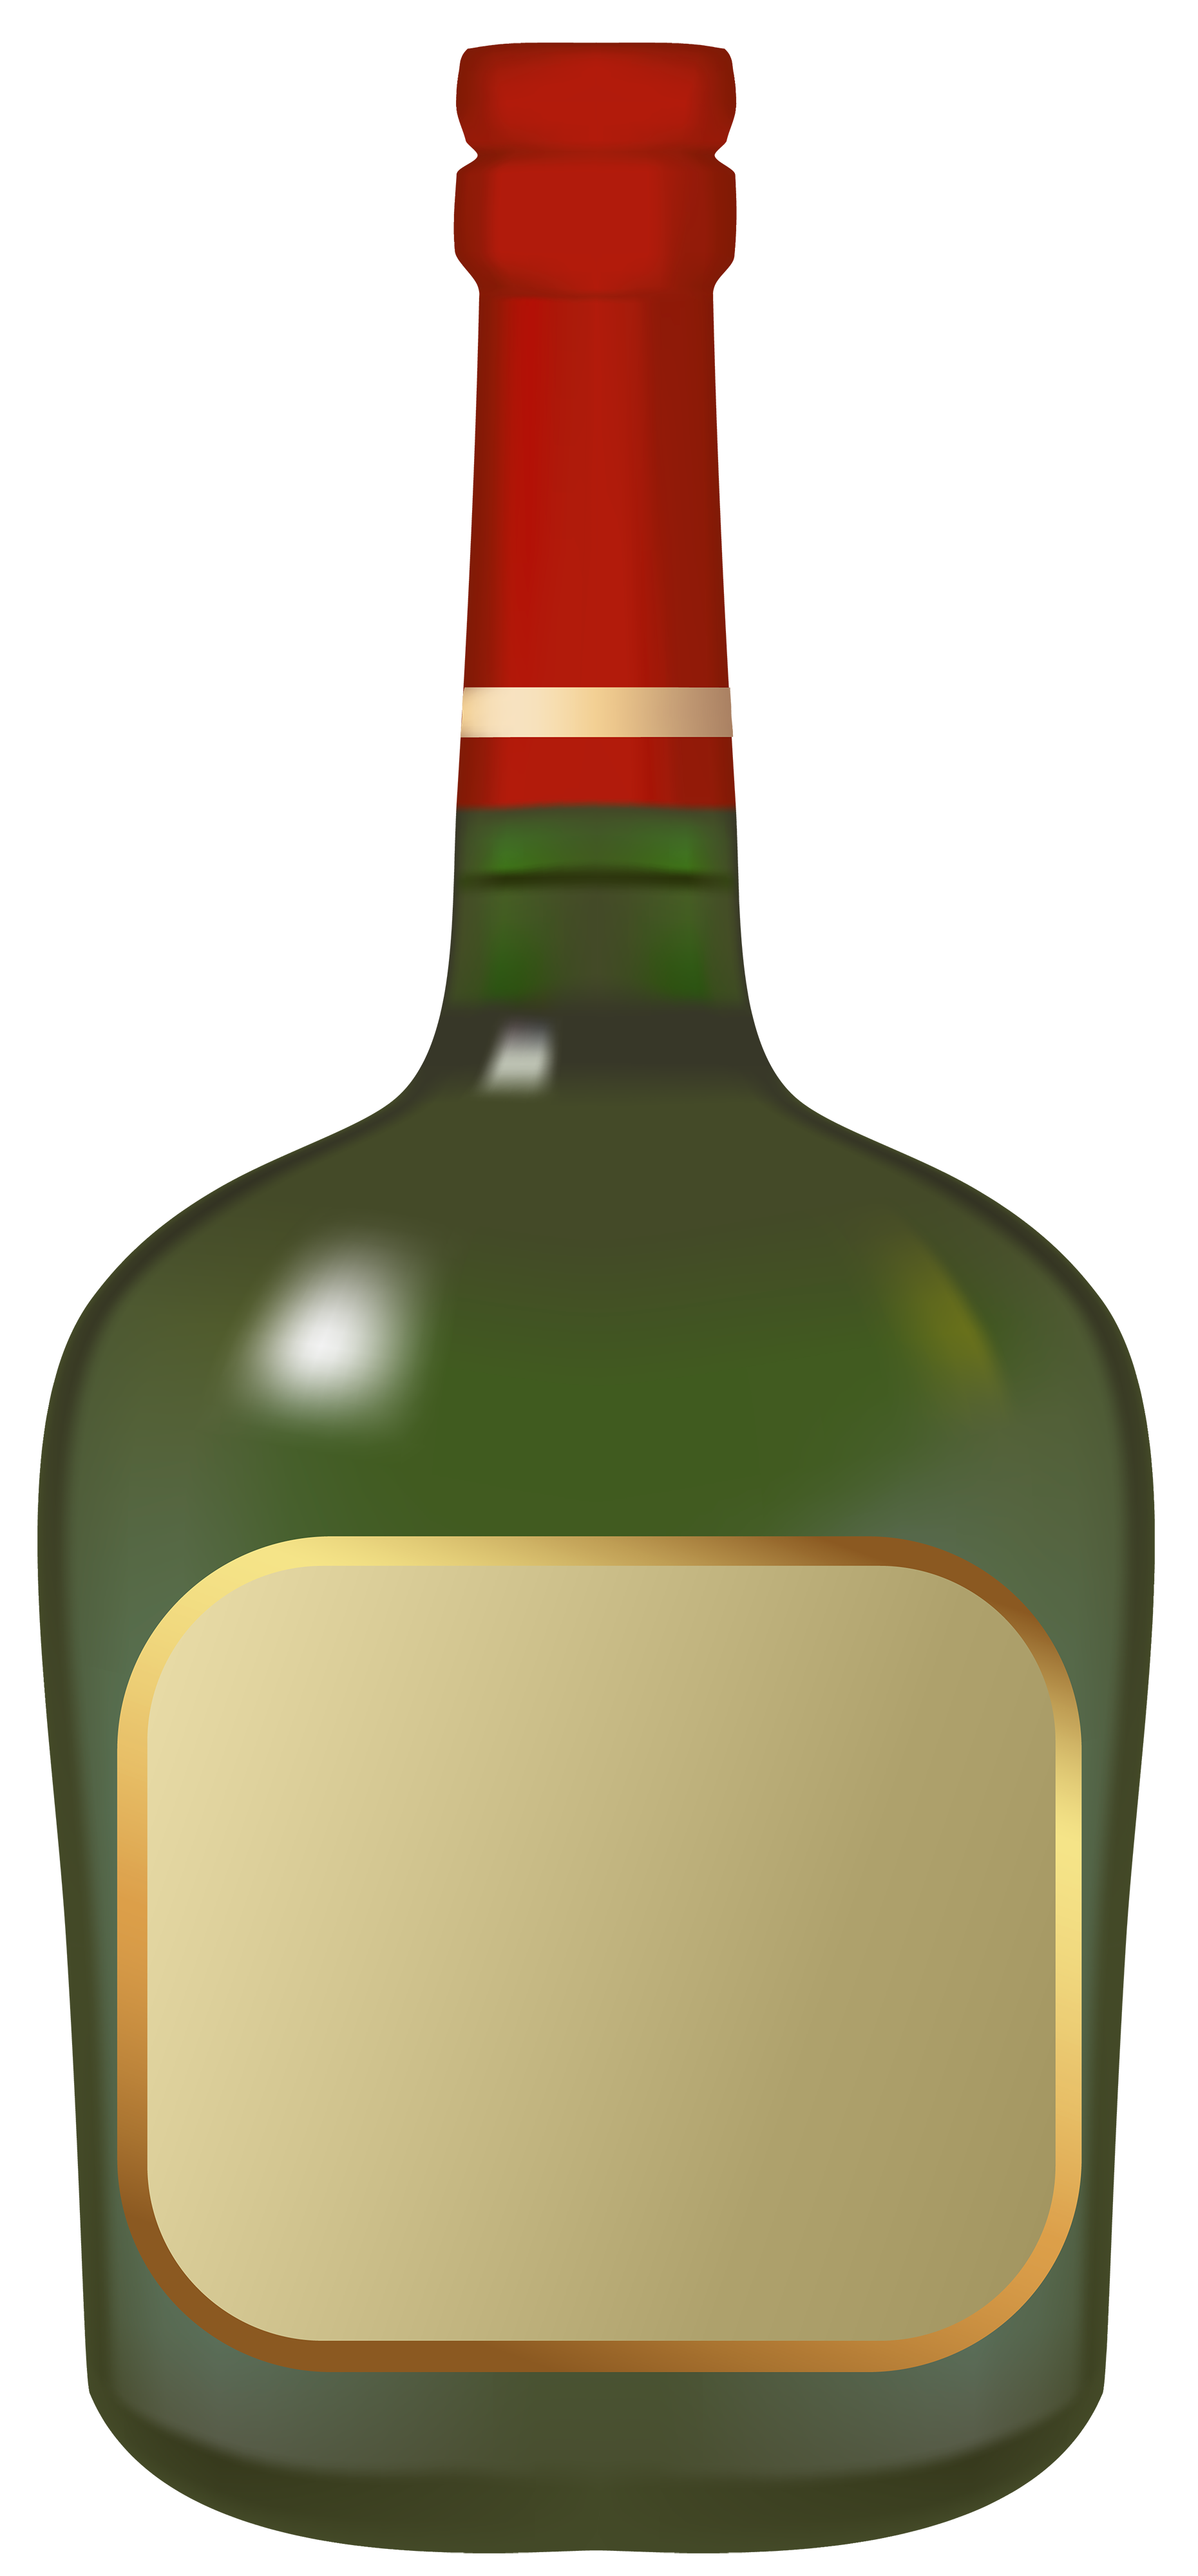 1860x4000 19 Alcohol Vector Transparent Huge Freebie! Download For